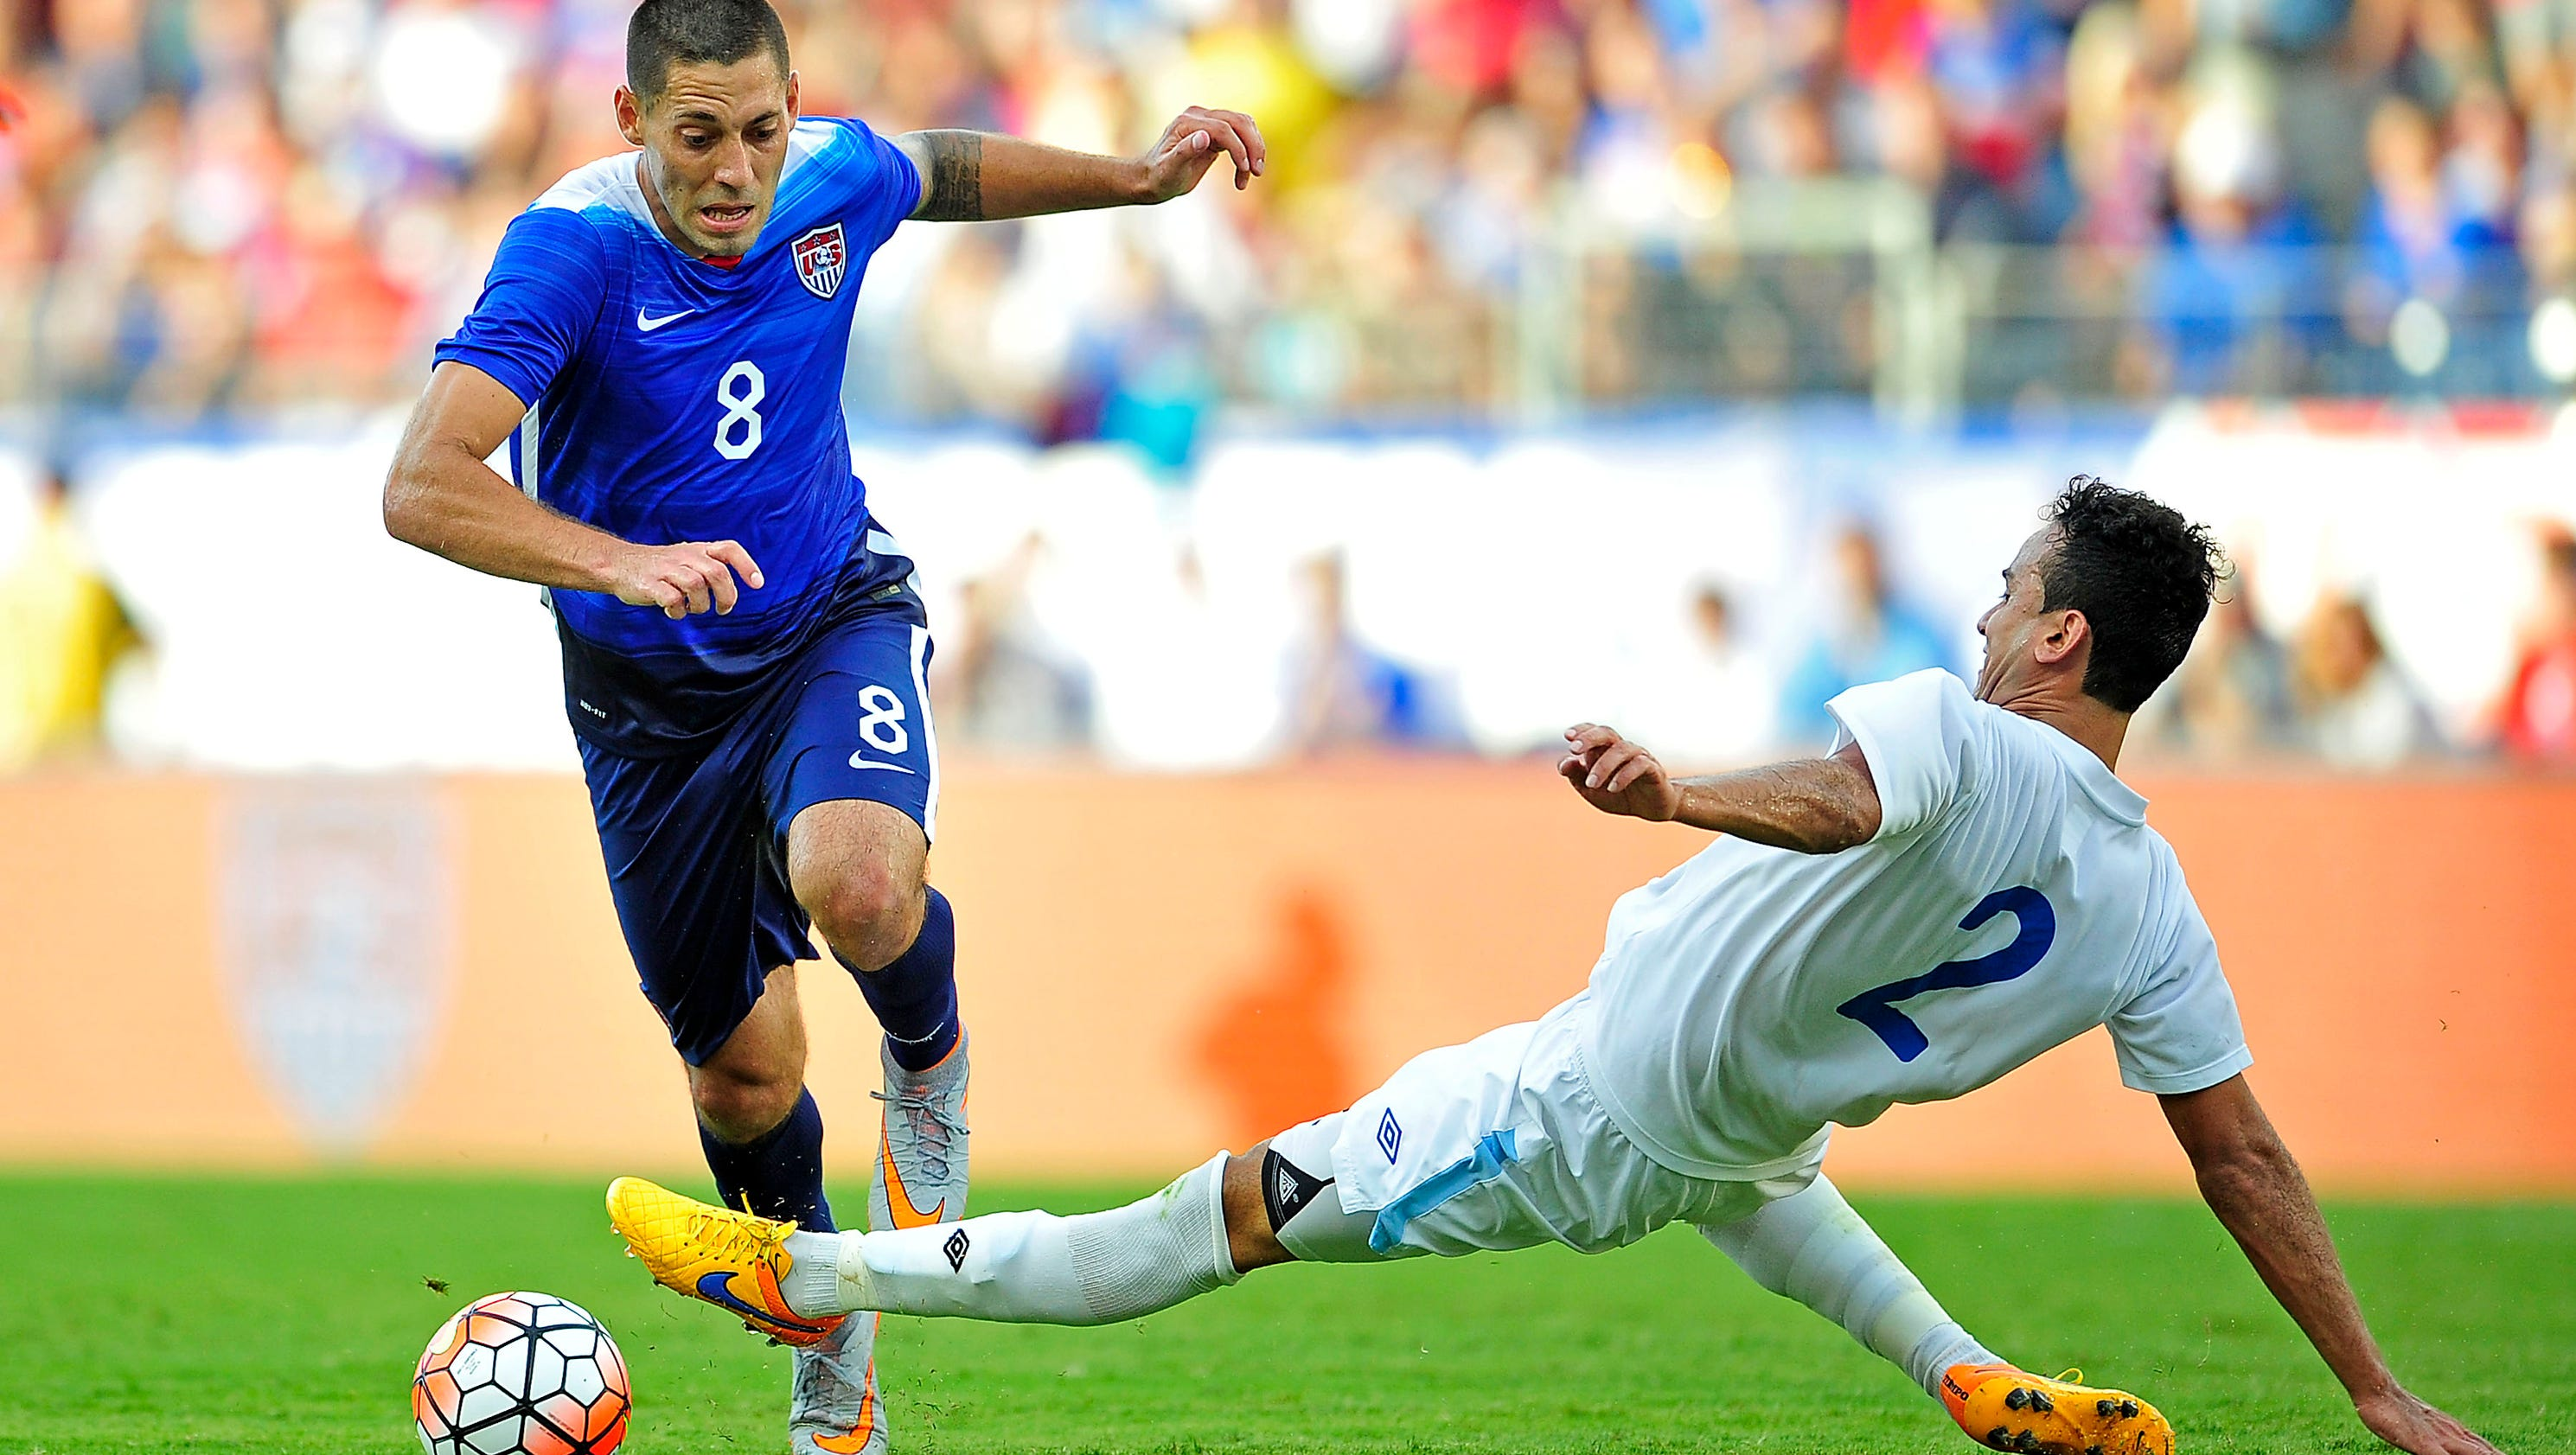 Nashville to host US Soccer in 2017 Gold Cup tournament